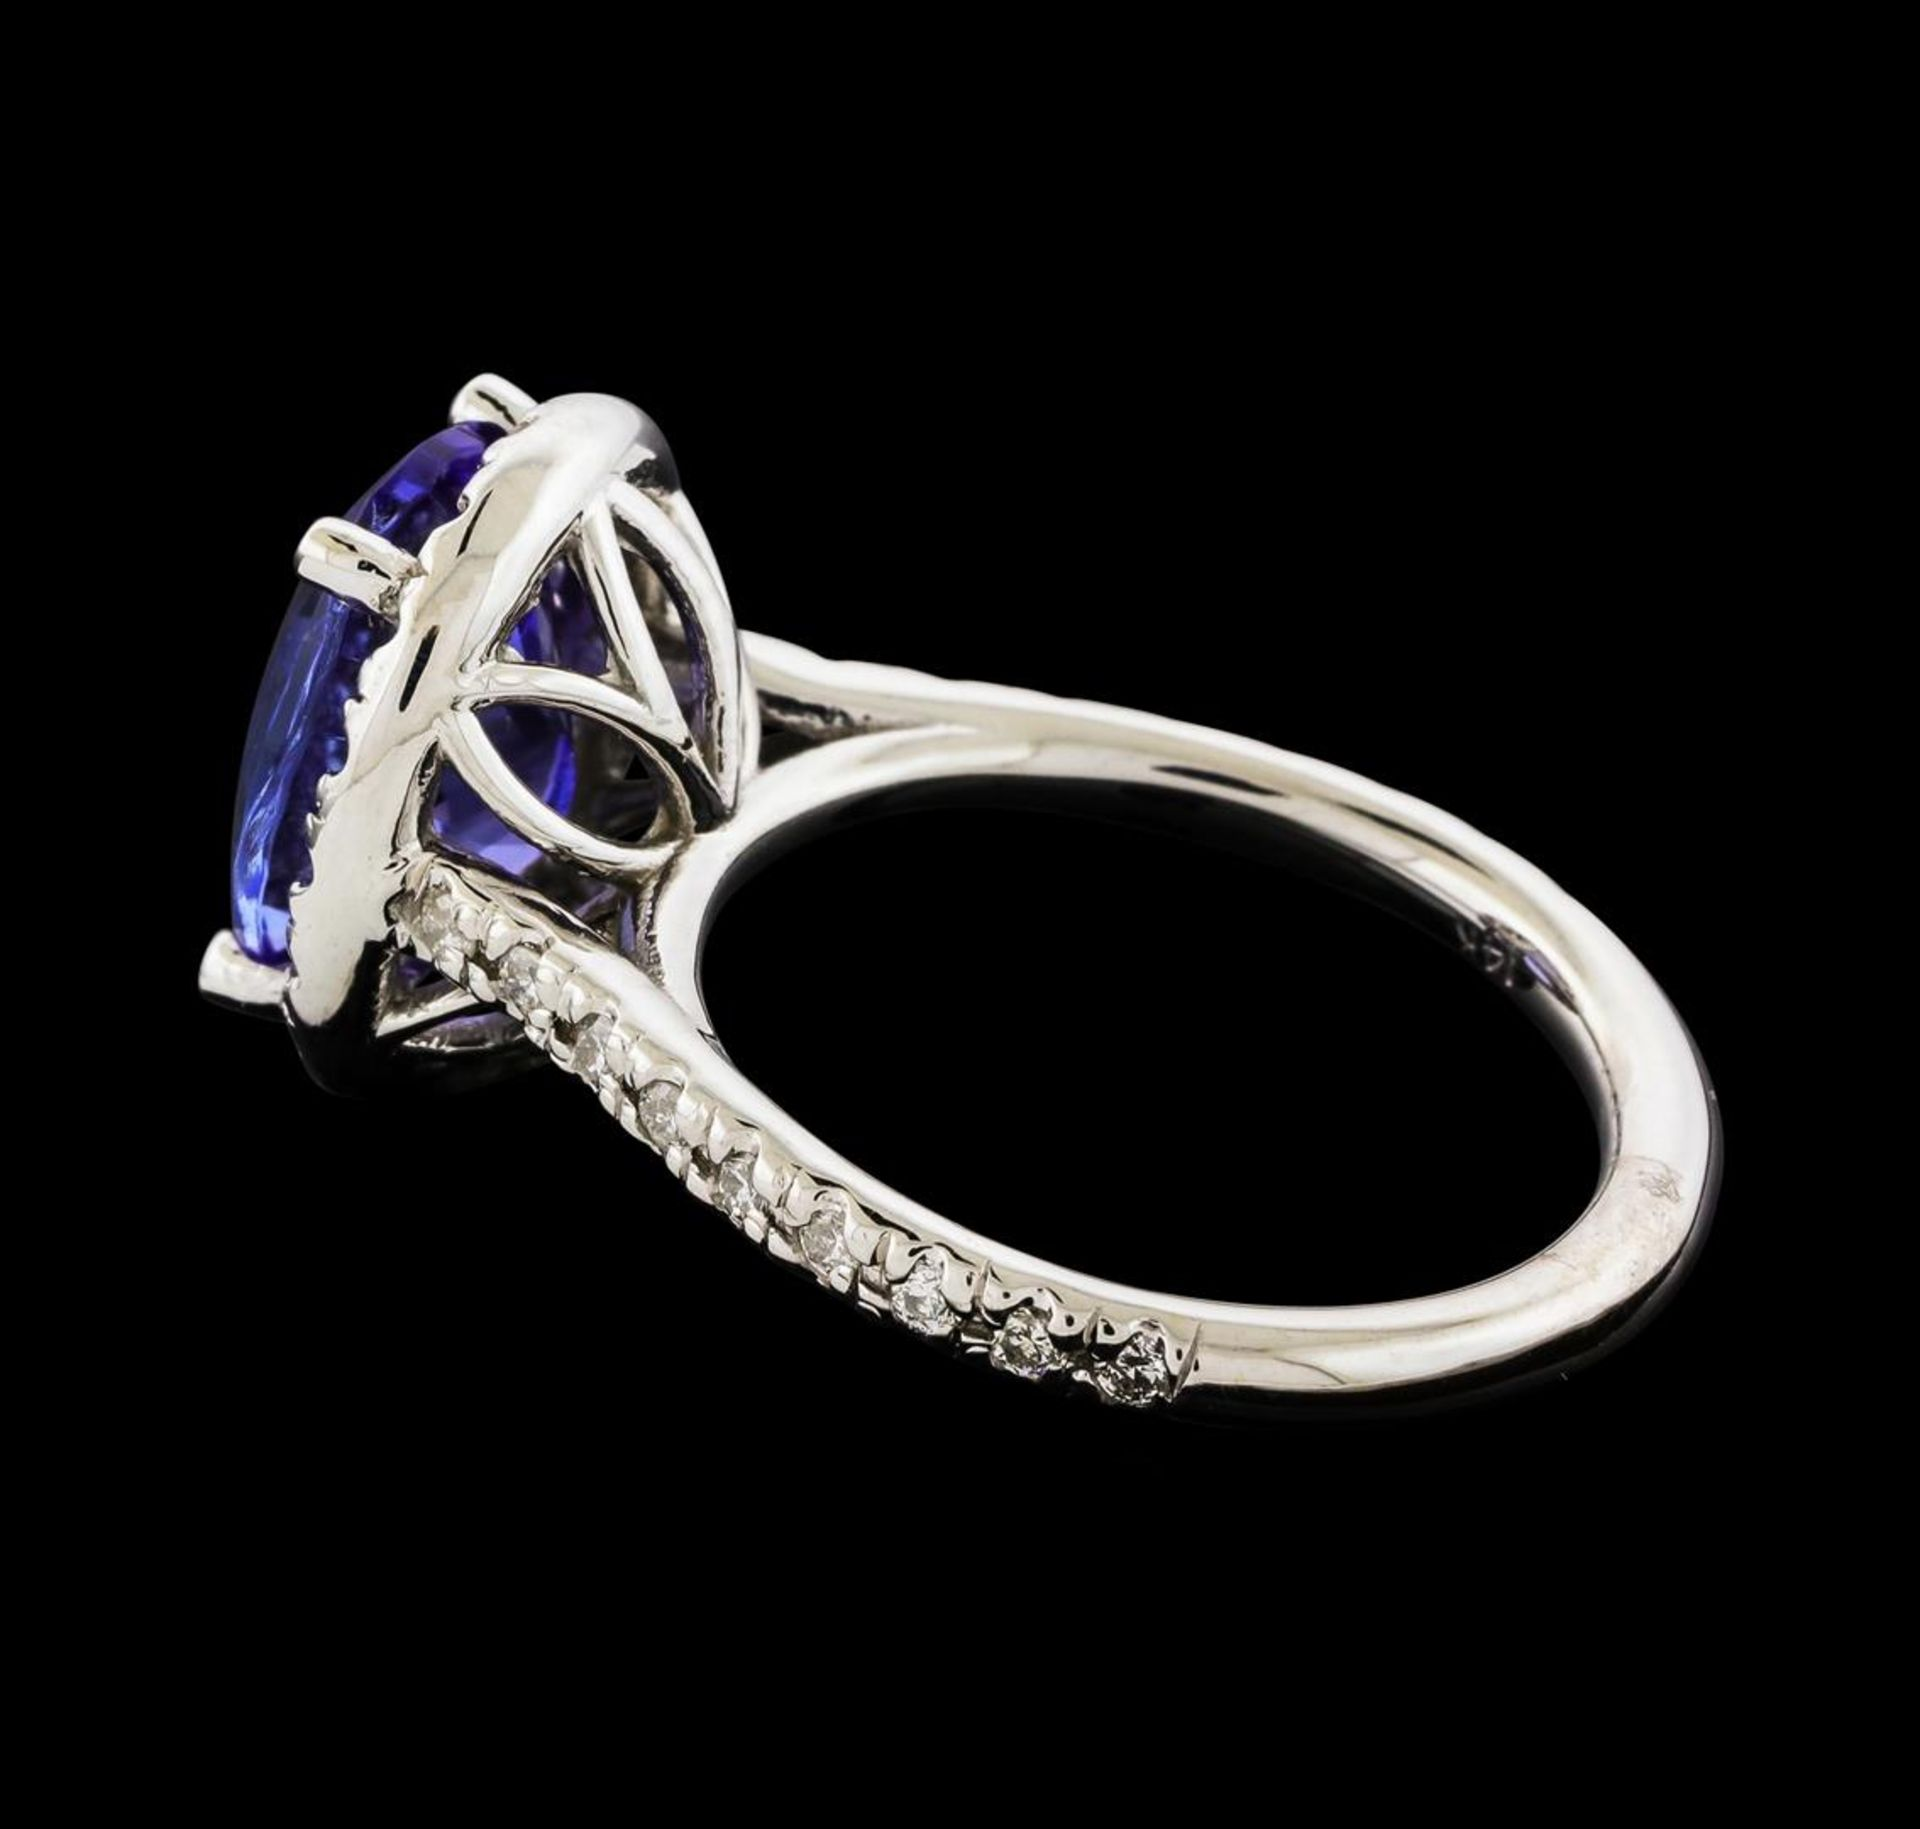 3.25 ctw Tanzanite and Diamond Ring - 14KT White Gold - Image 3 of 4